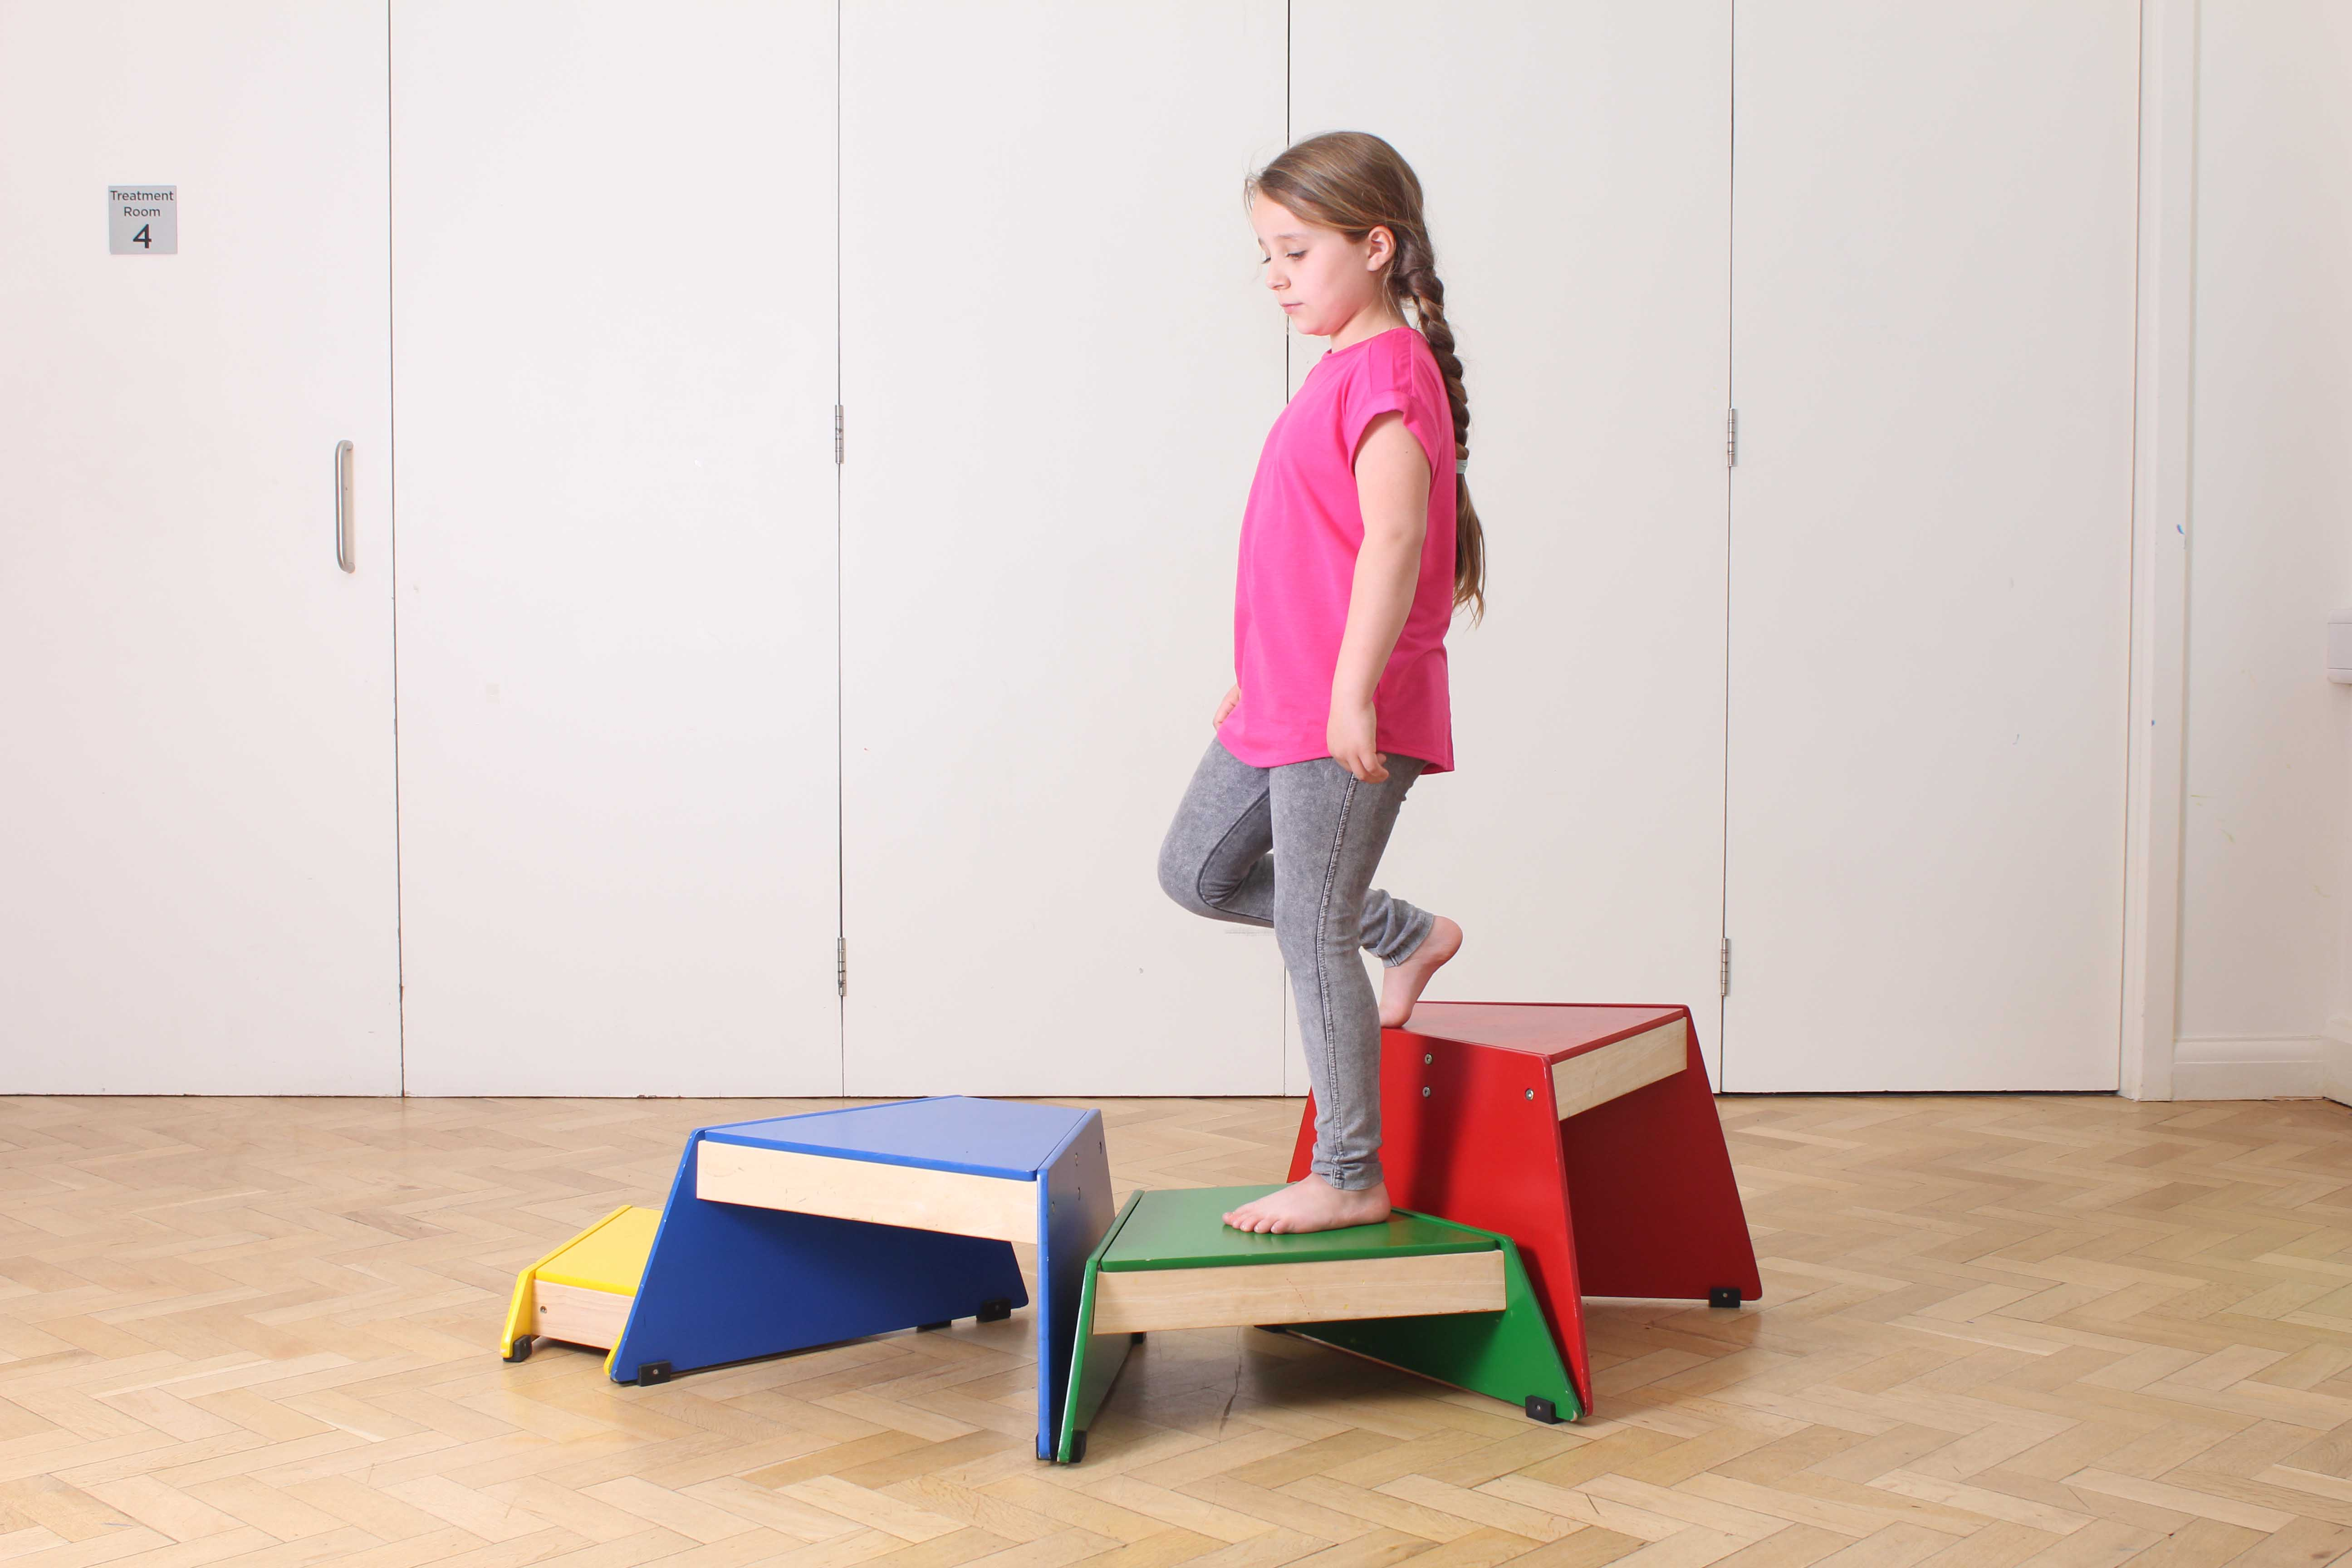 Mobility exercises to address heel pain supervised by a paediatric physiotherapist